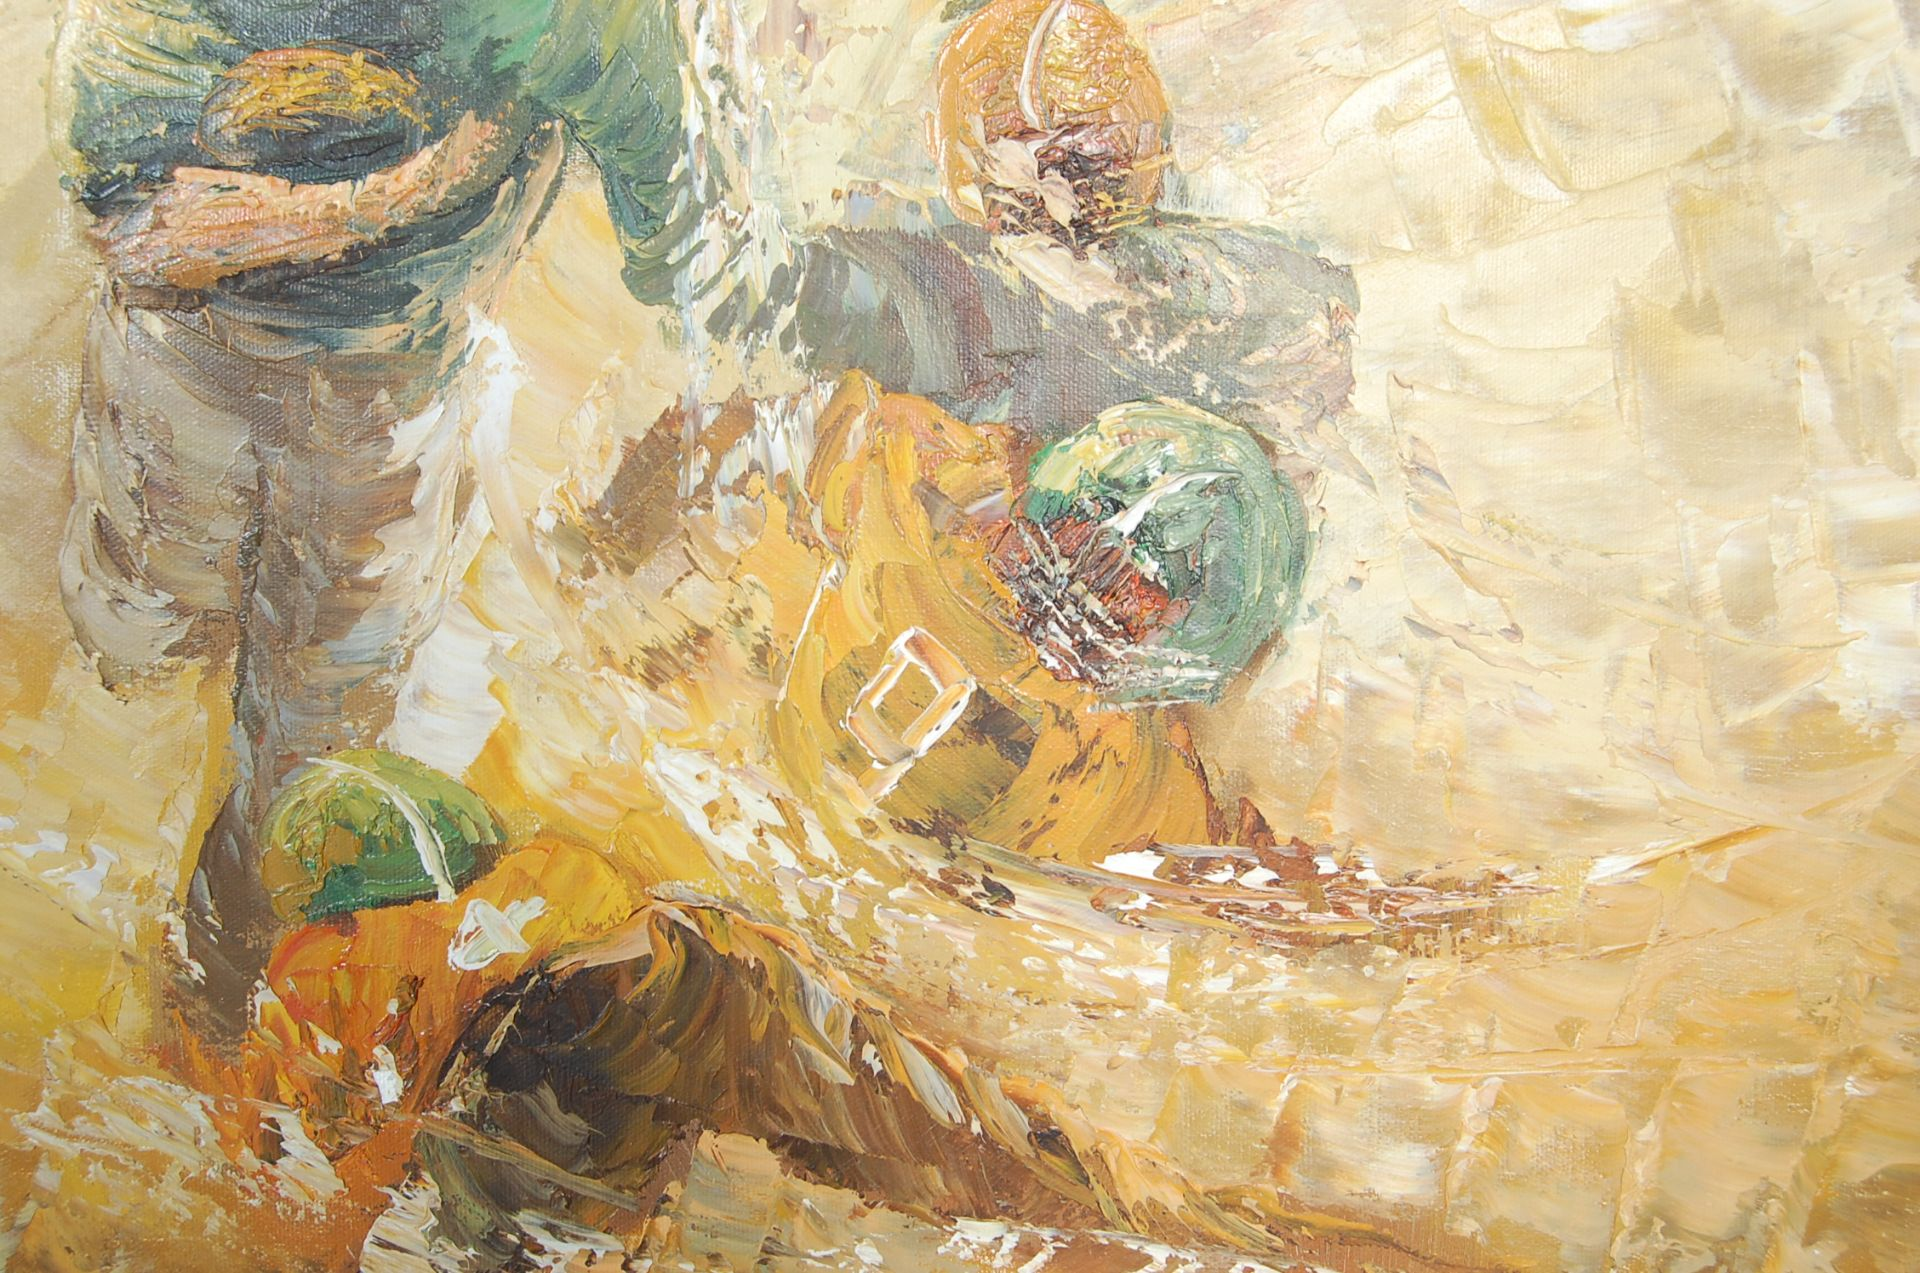 AMERICAN FOOTBALL OIL ON CANVAS PALETTE KNIFE PAINTING - Image 4 of 6